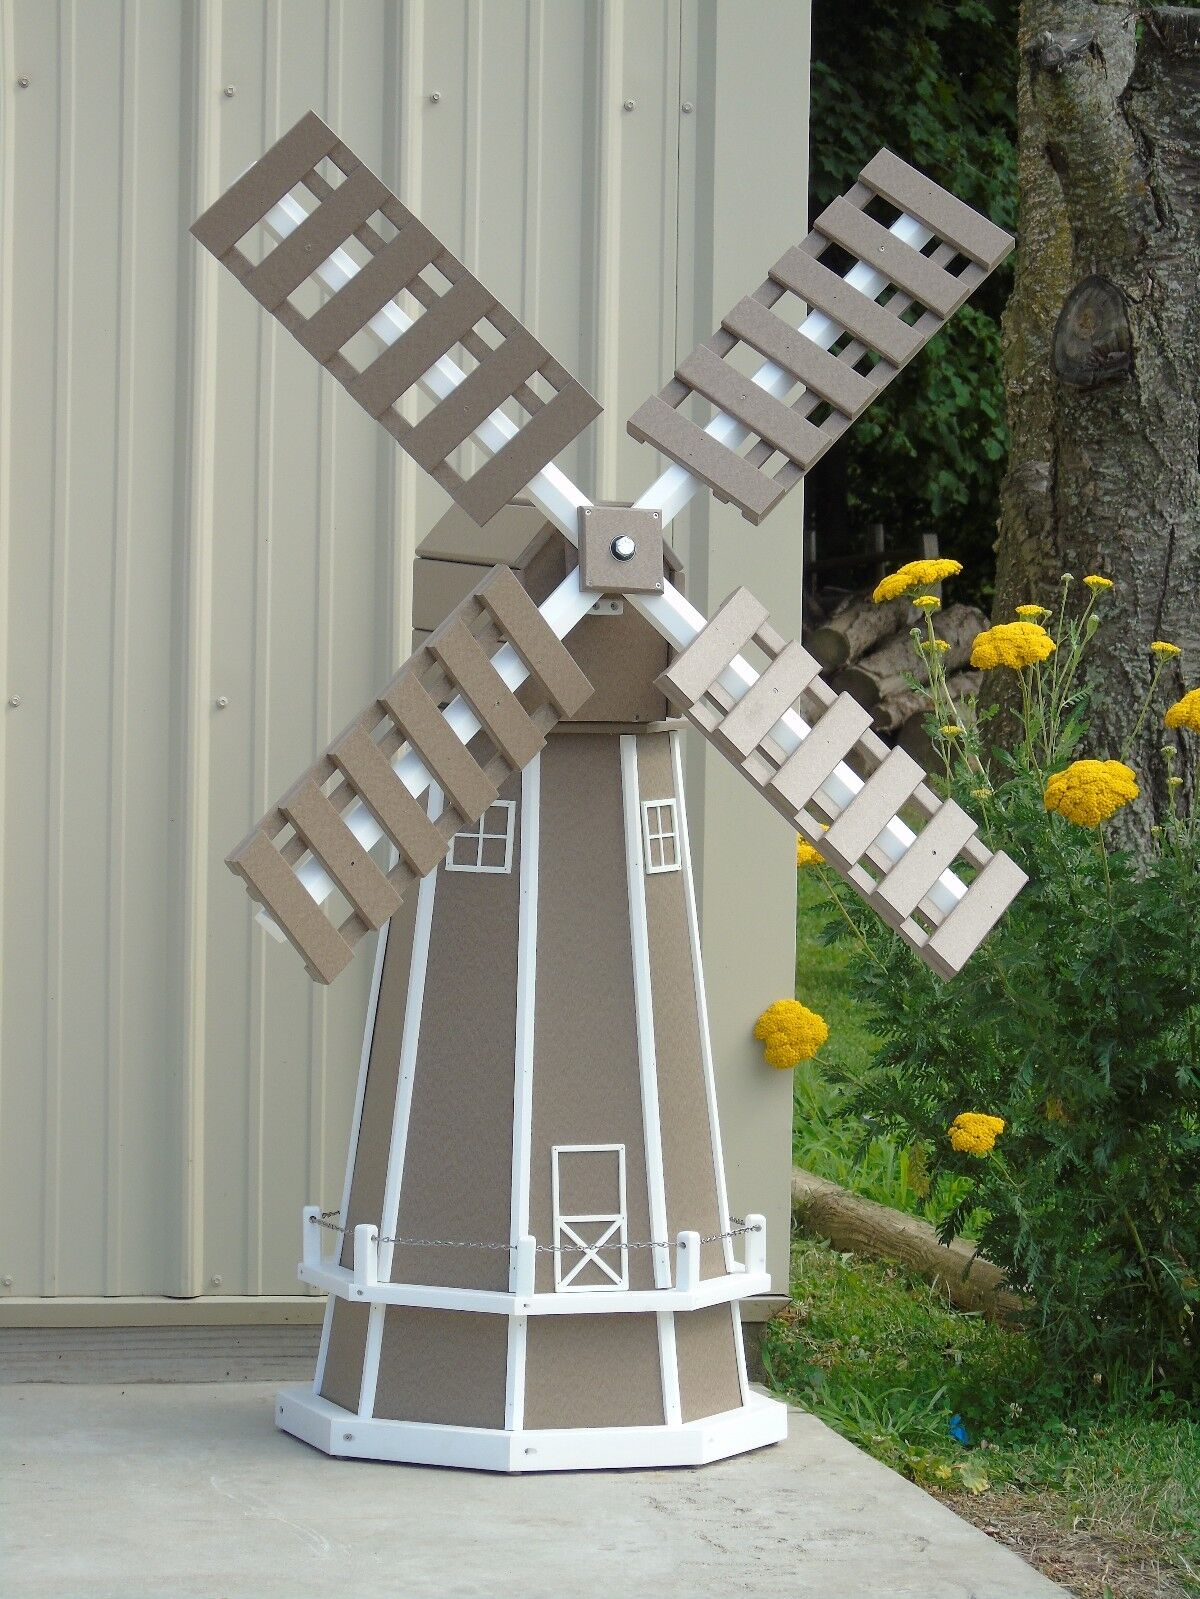 5 ft. Octagon (8 sided) Polywood Dutch Windmill (Clay with White Trim)